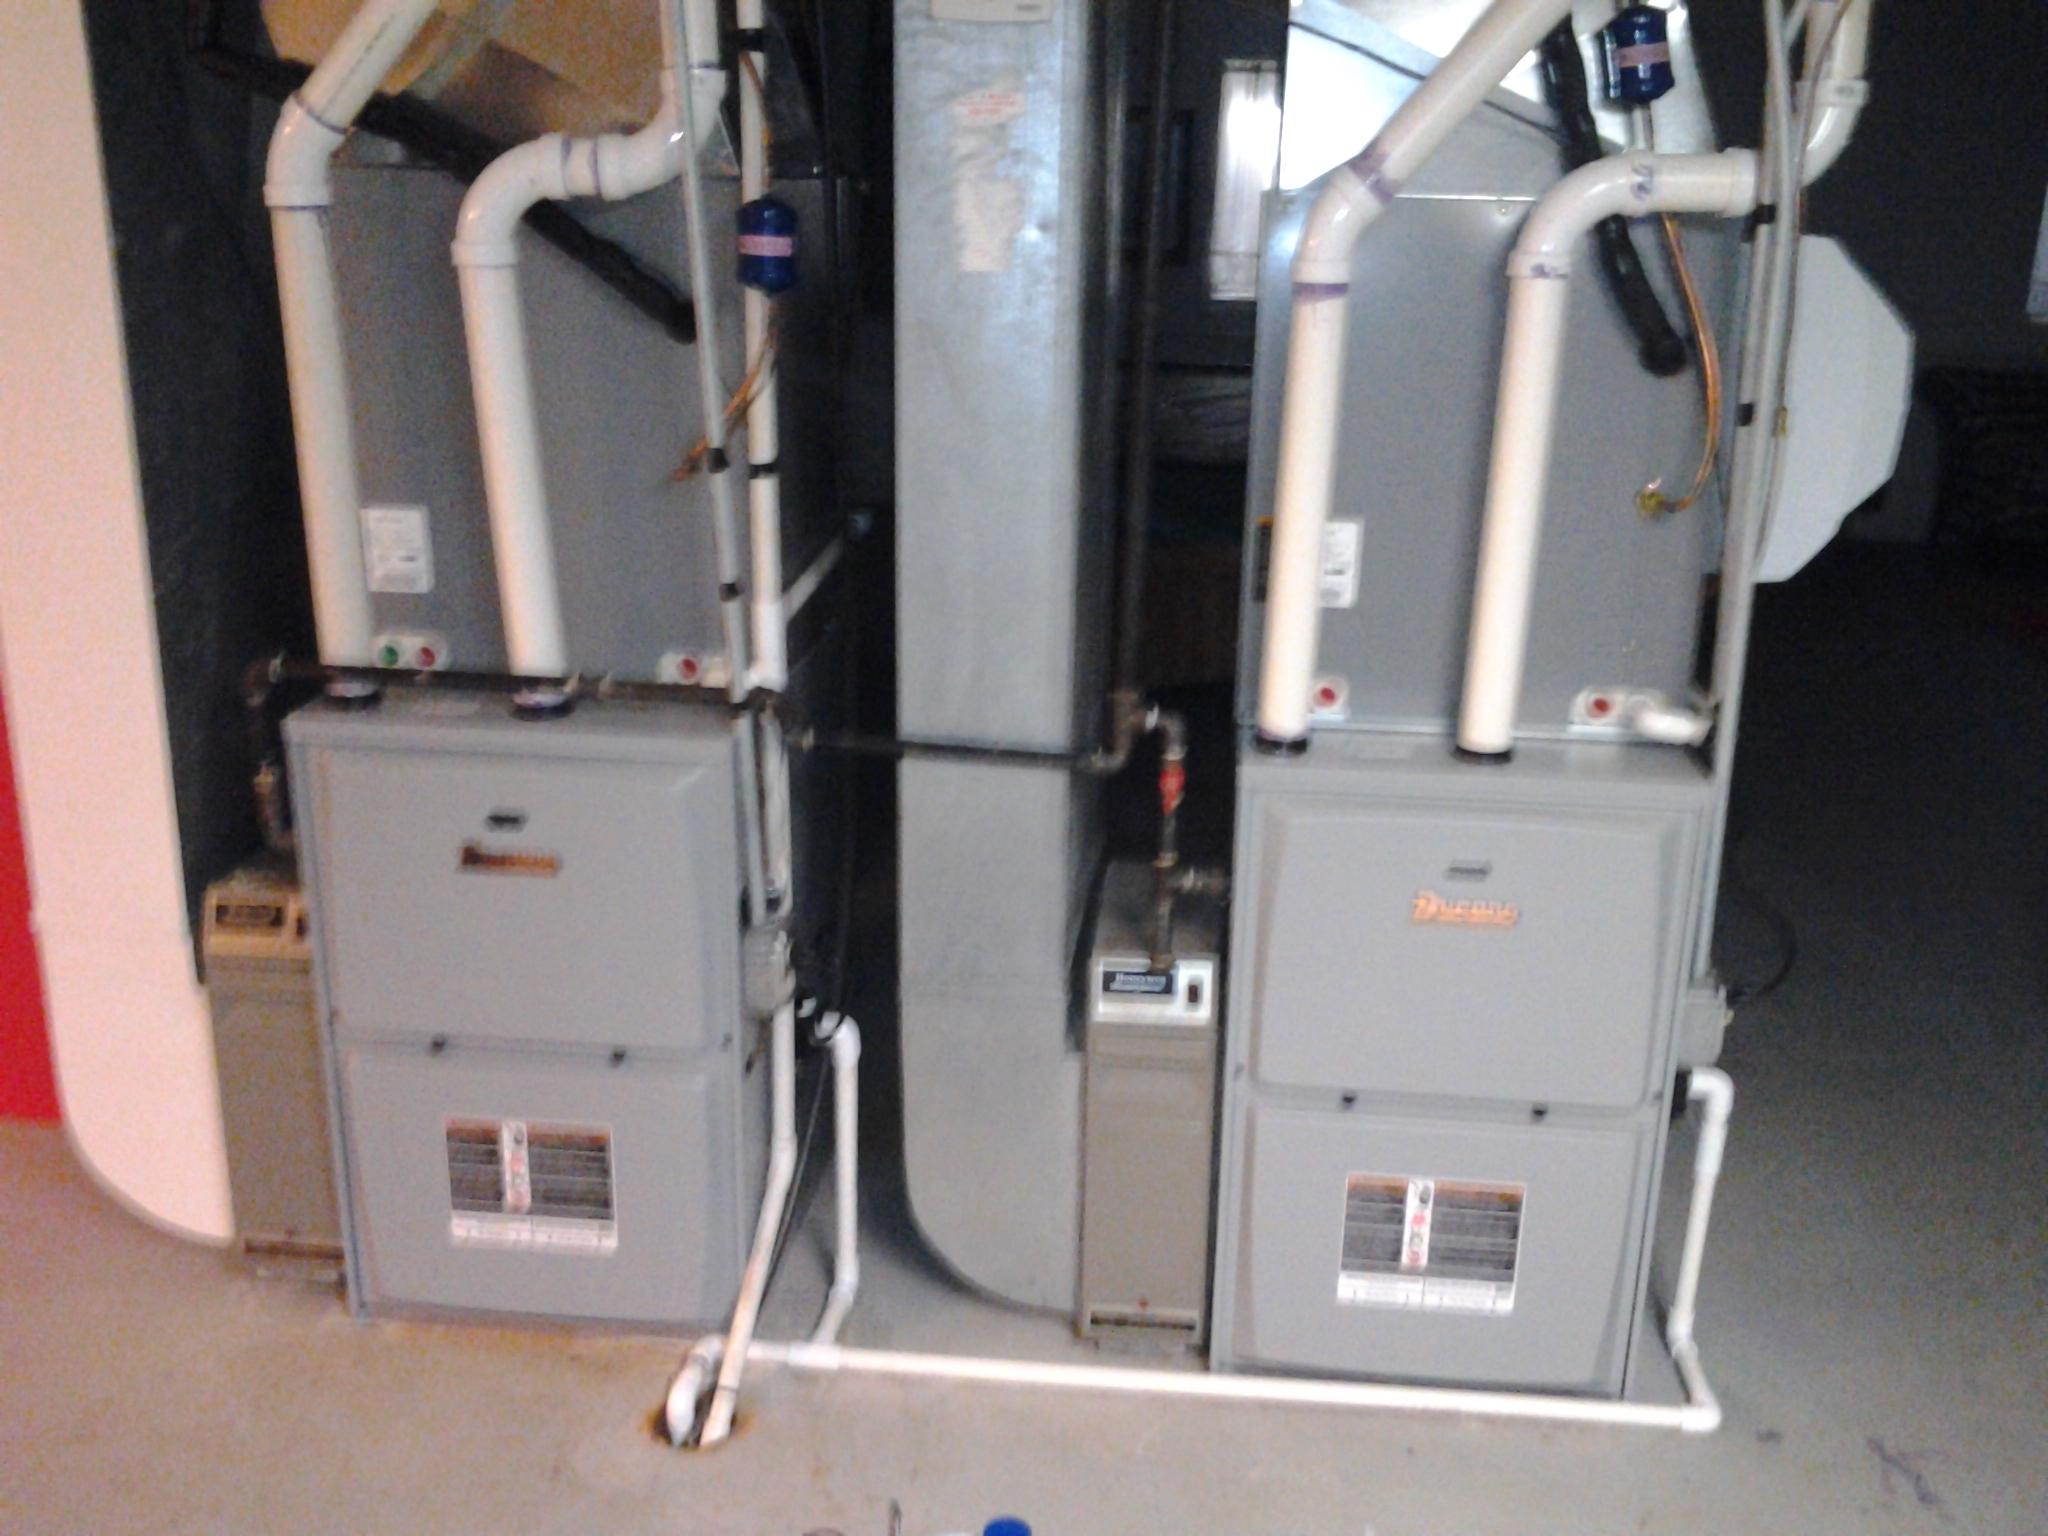 Installation of dual 90% furnace in a residential application, along with humidifiers and air cleaners